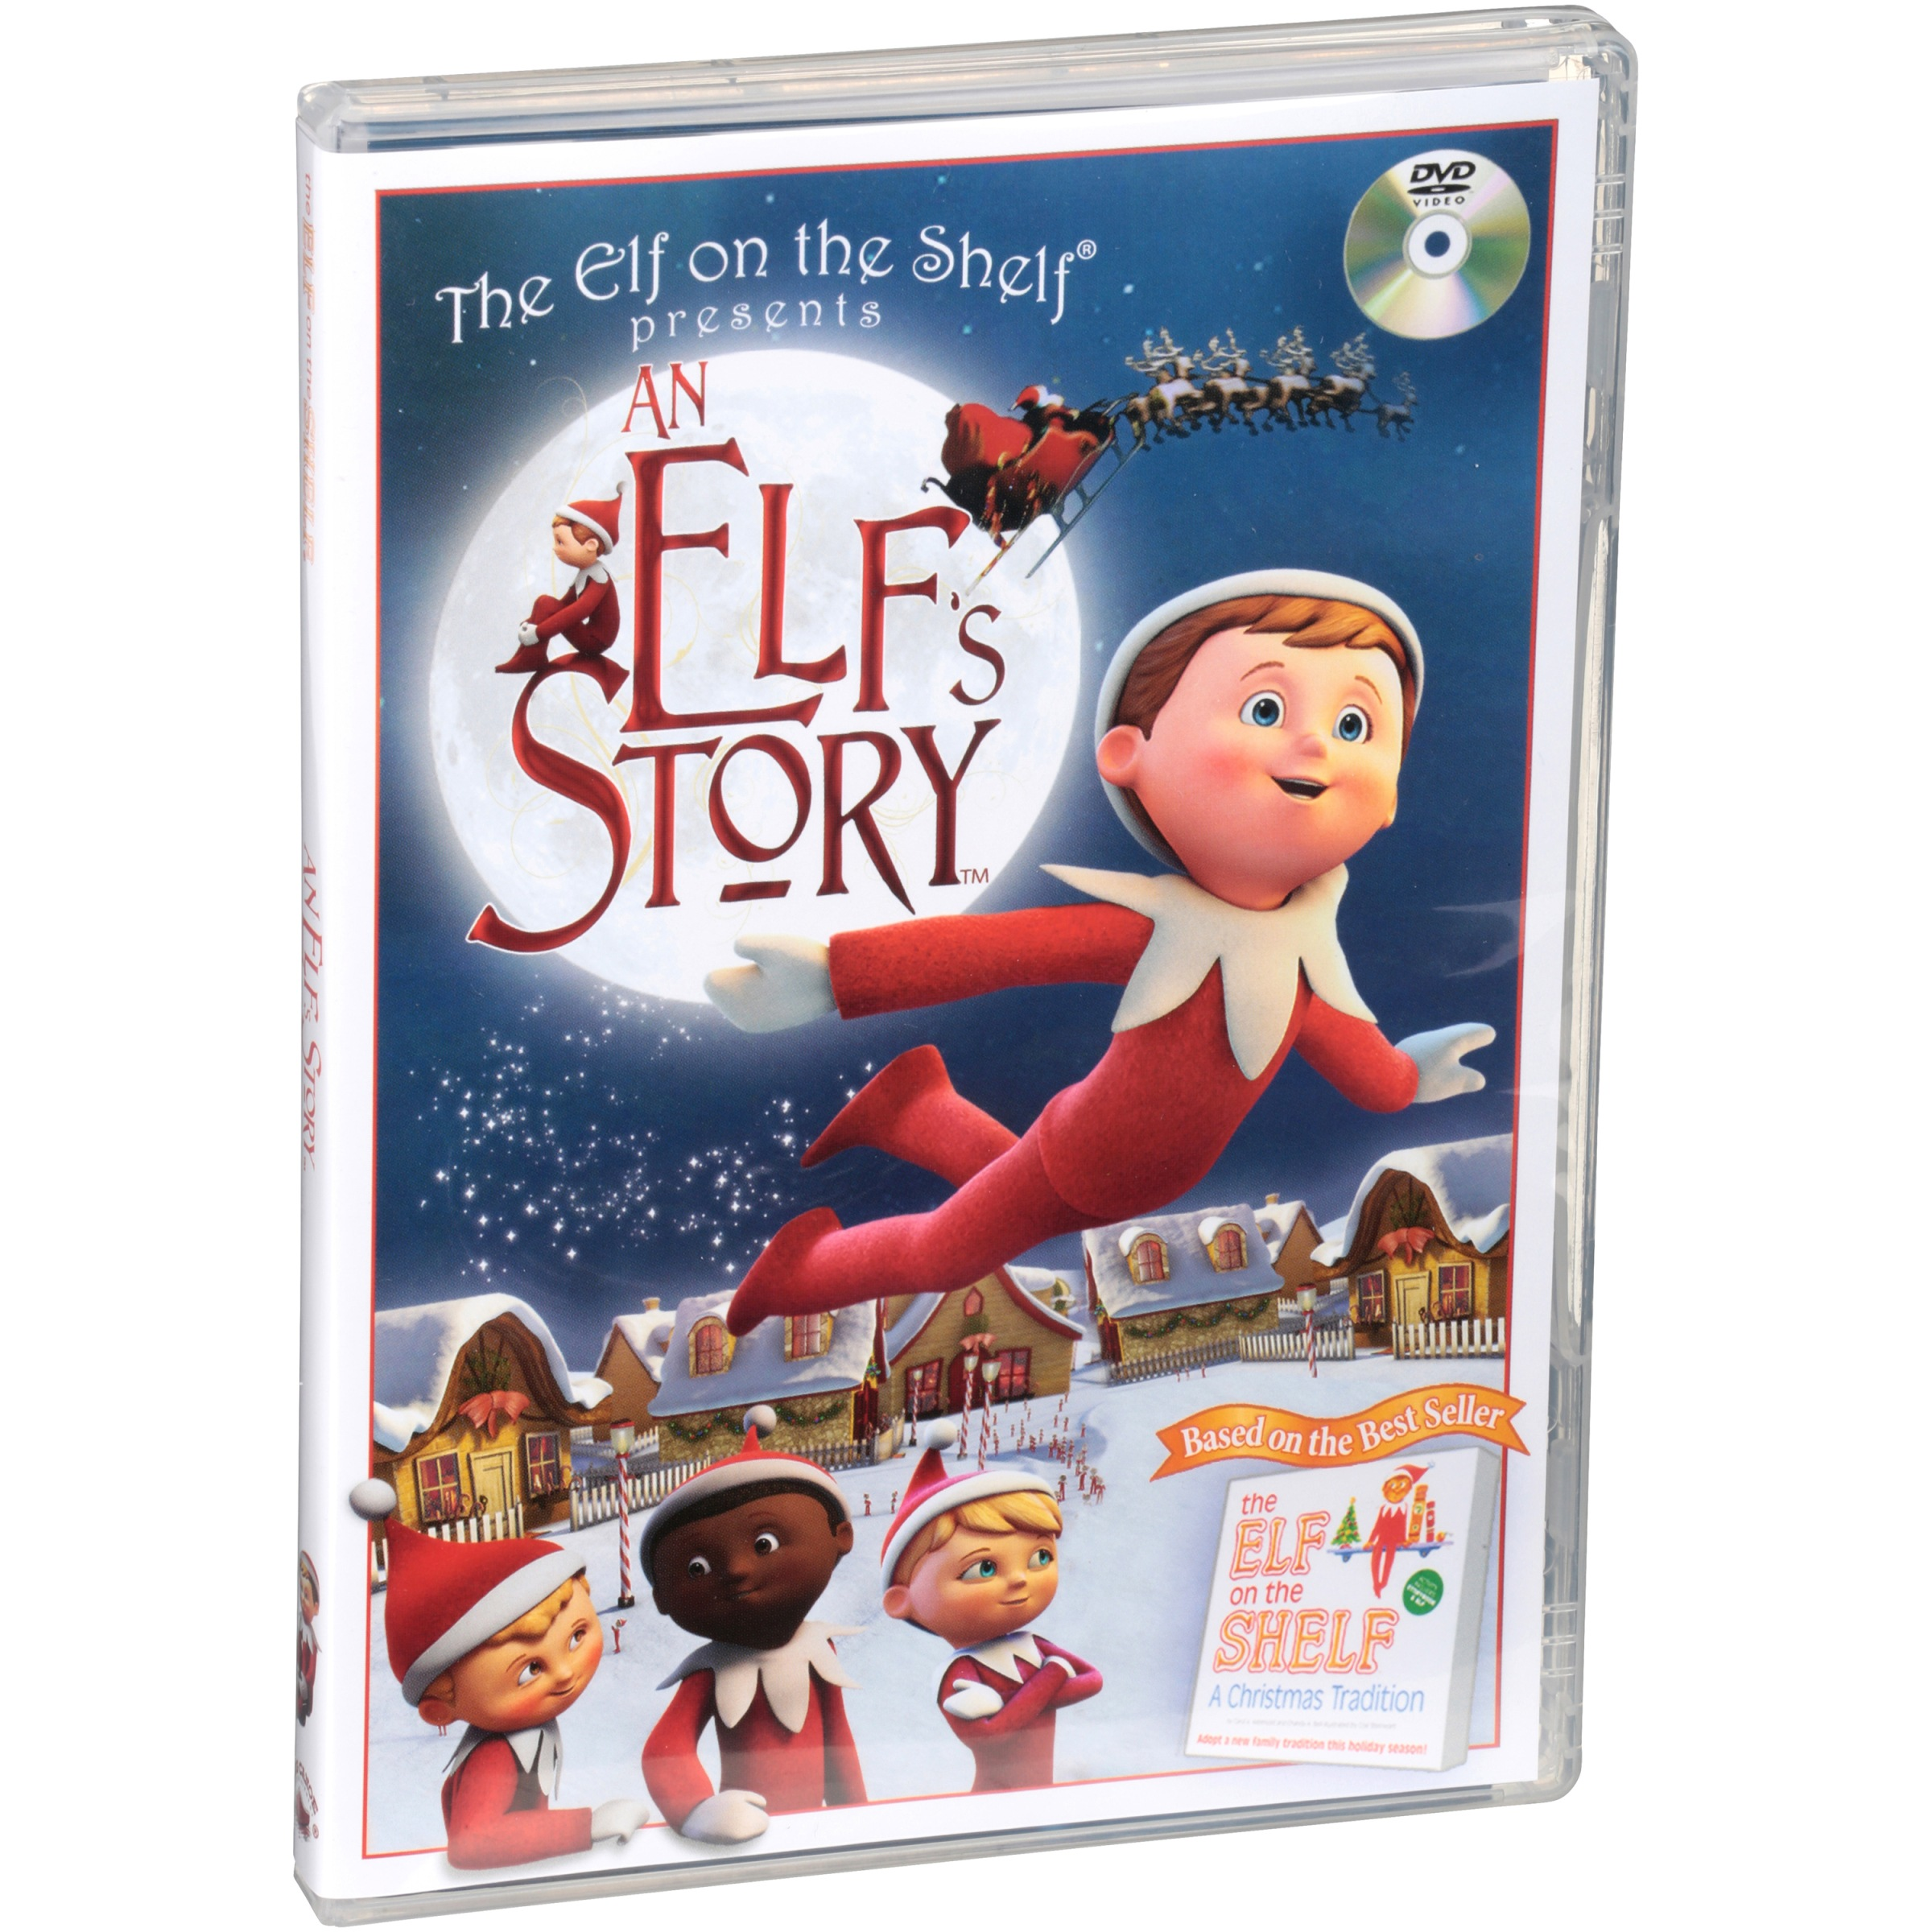 Elf on the Shelf® Presents An Elf's Story™ (DVD)